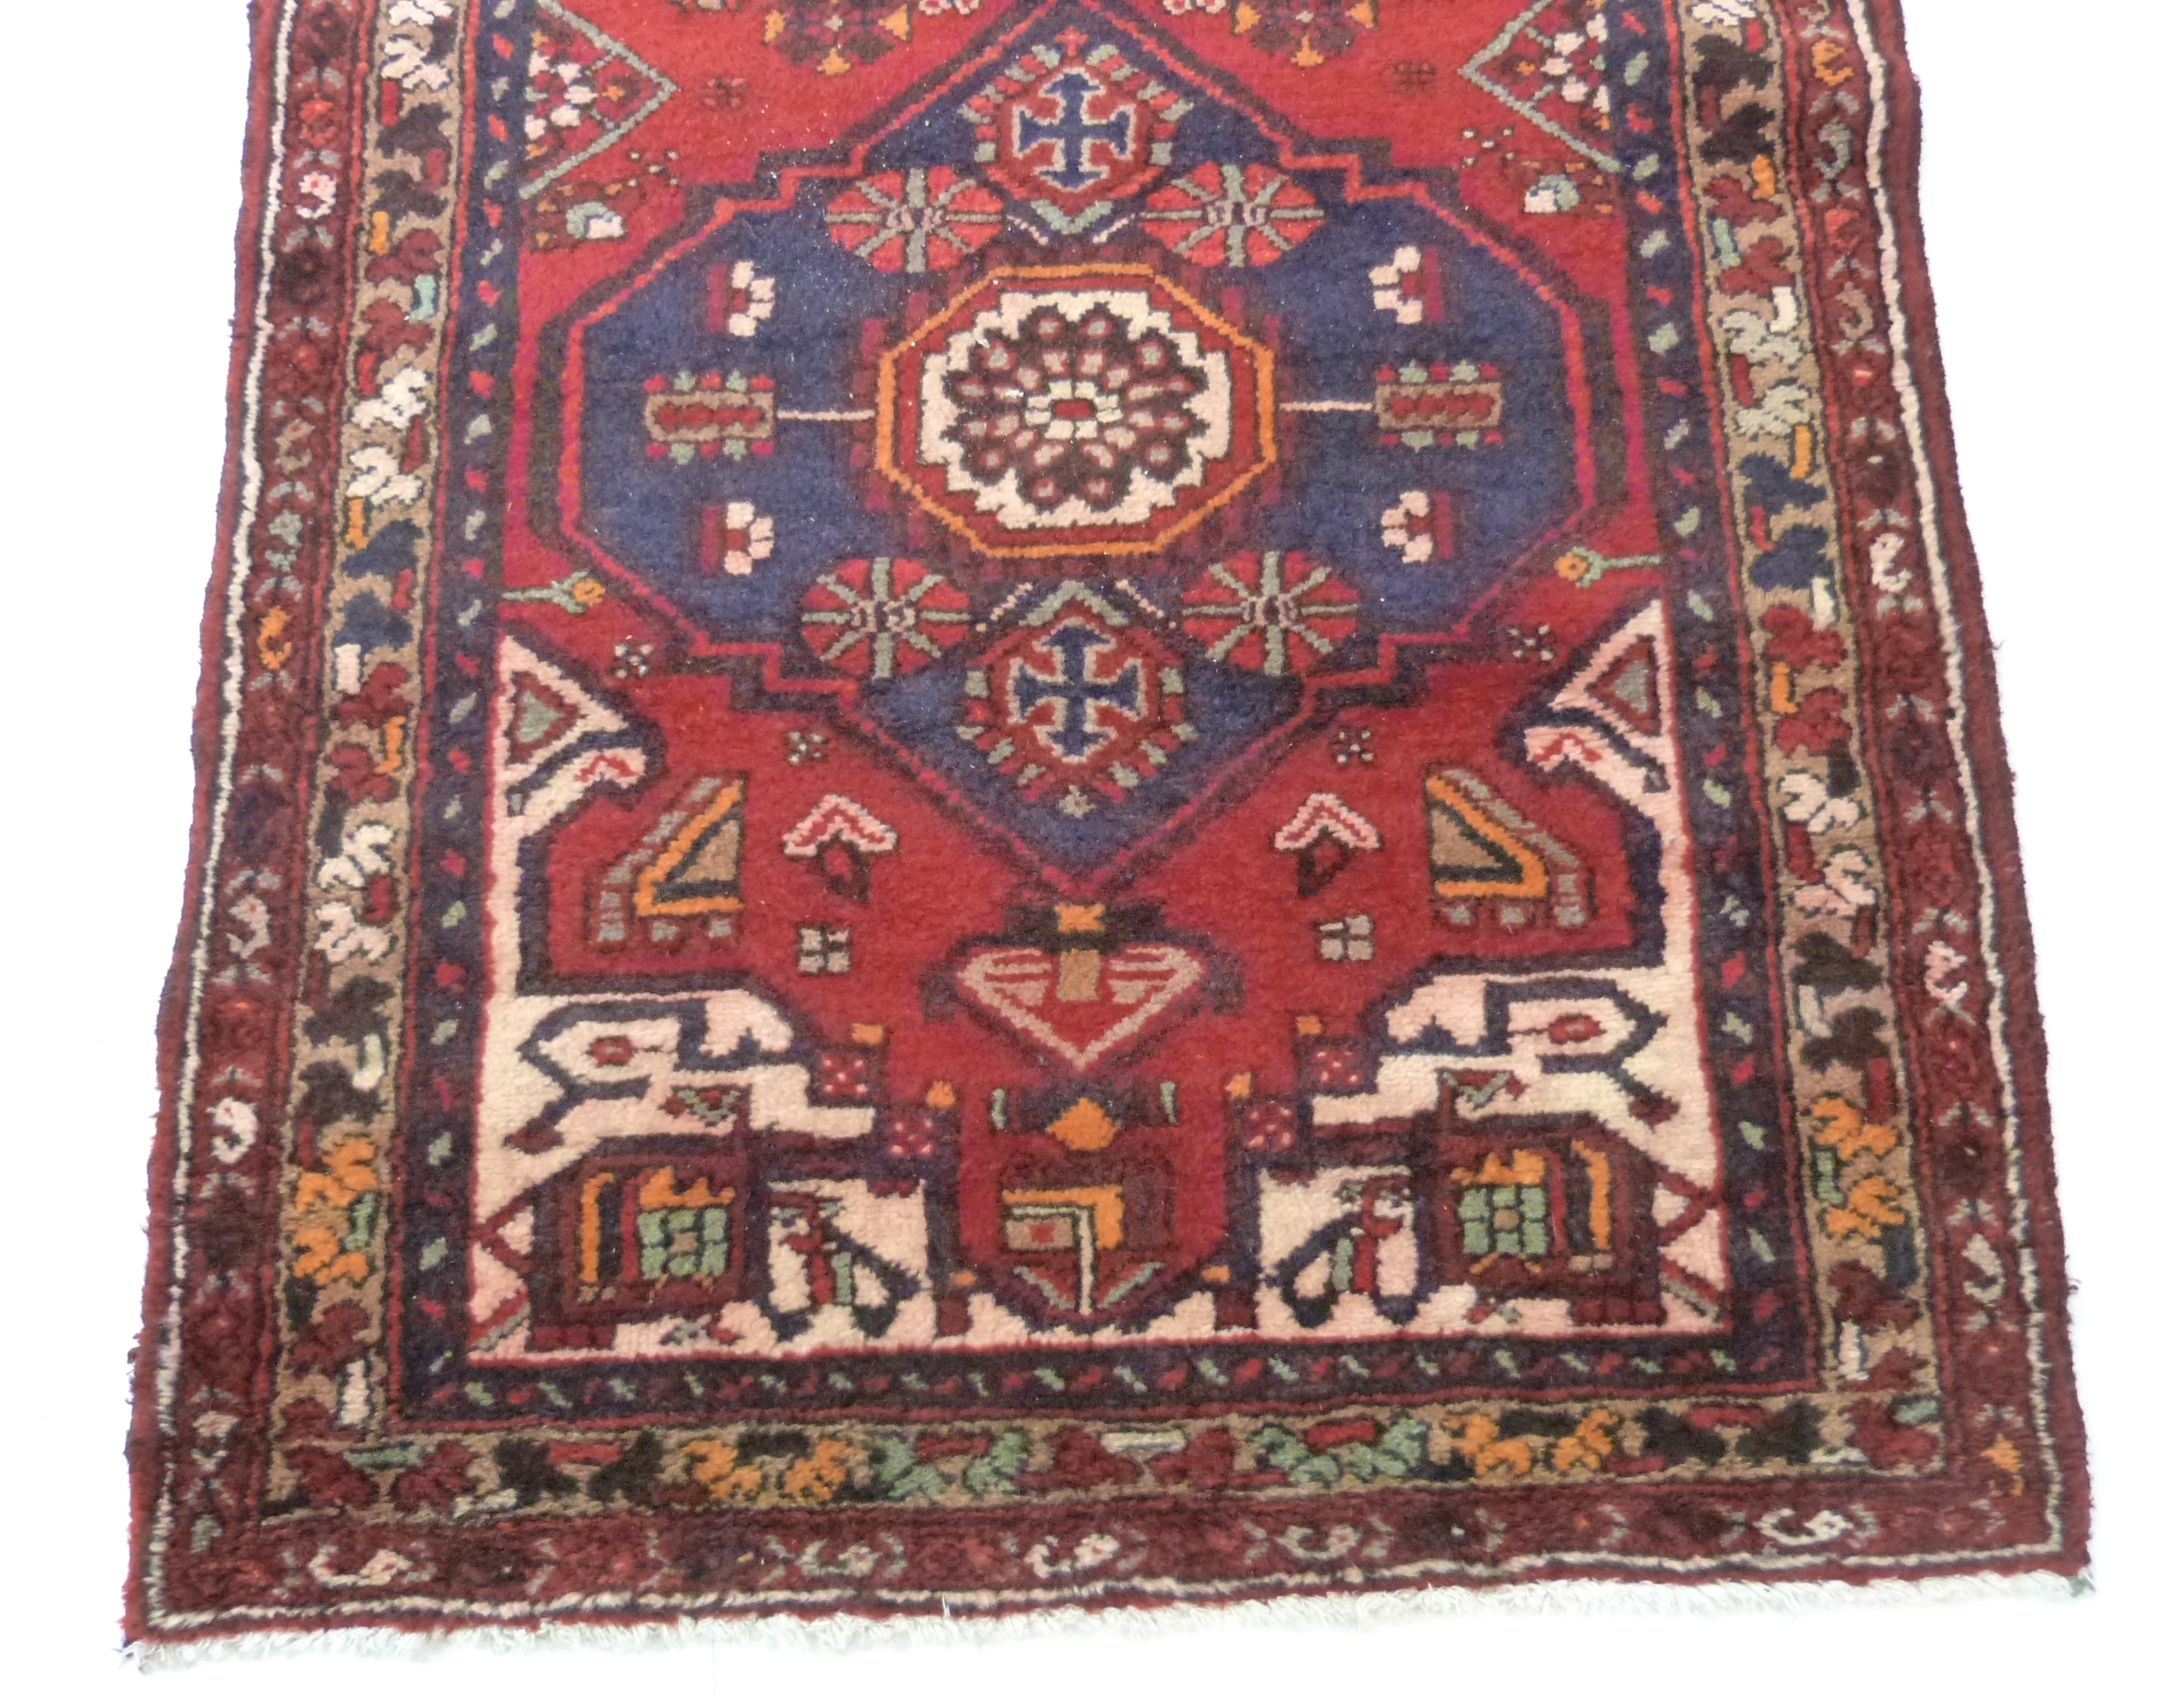 Rich red ground full pile Persian Hamadan Runner 286cm x 110cm approximately - Image 2 of 6